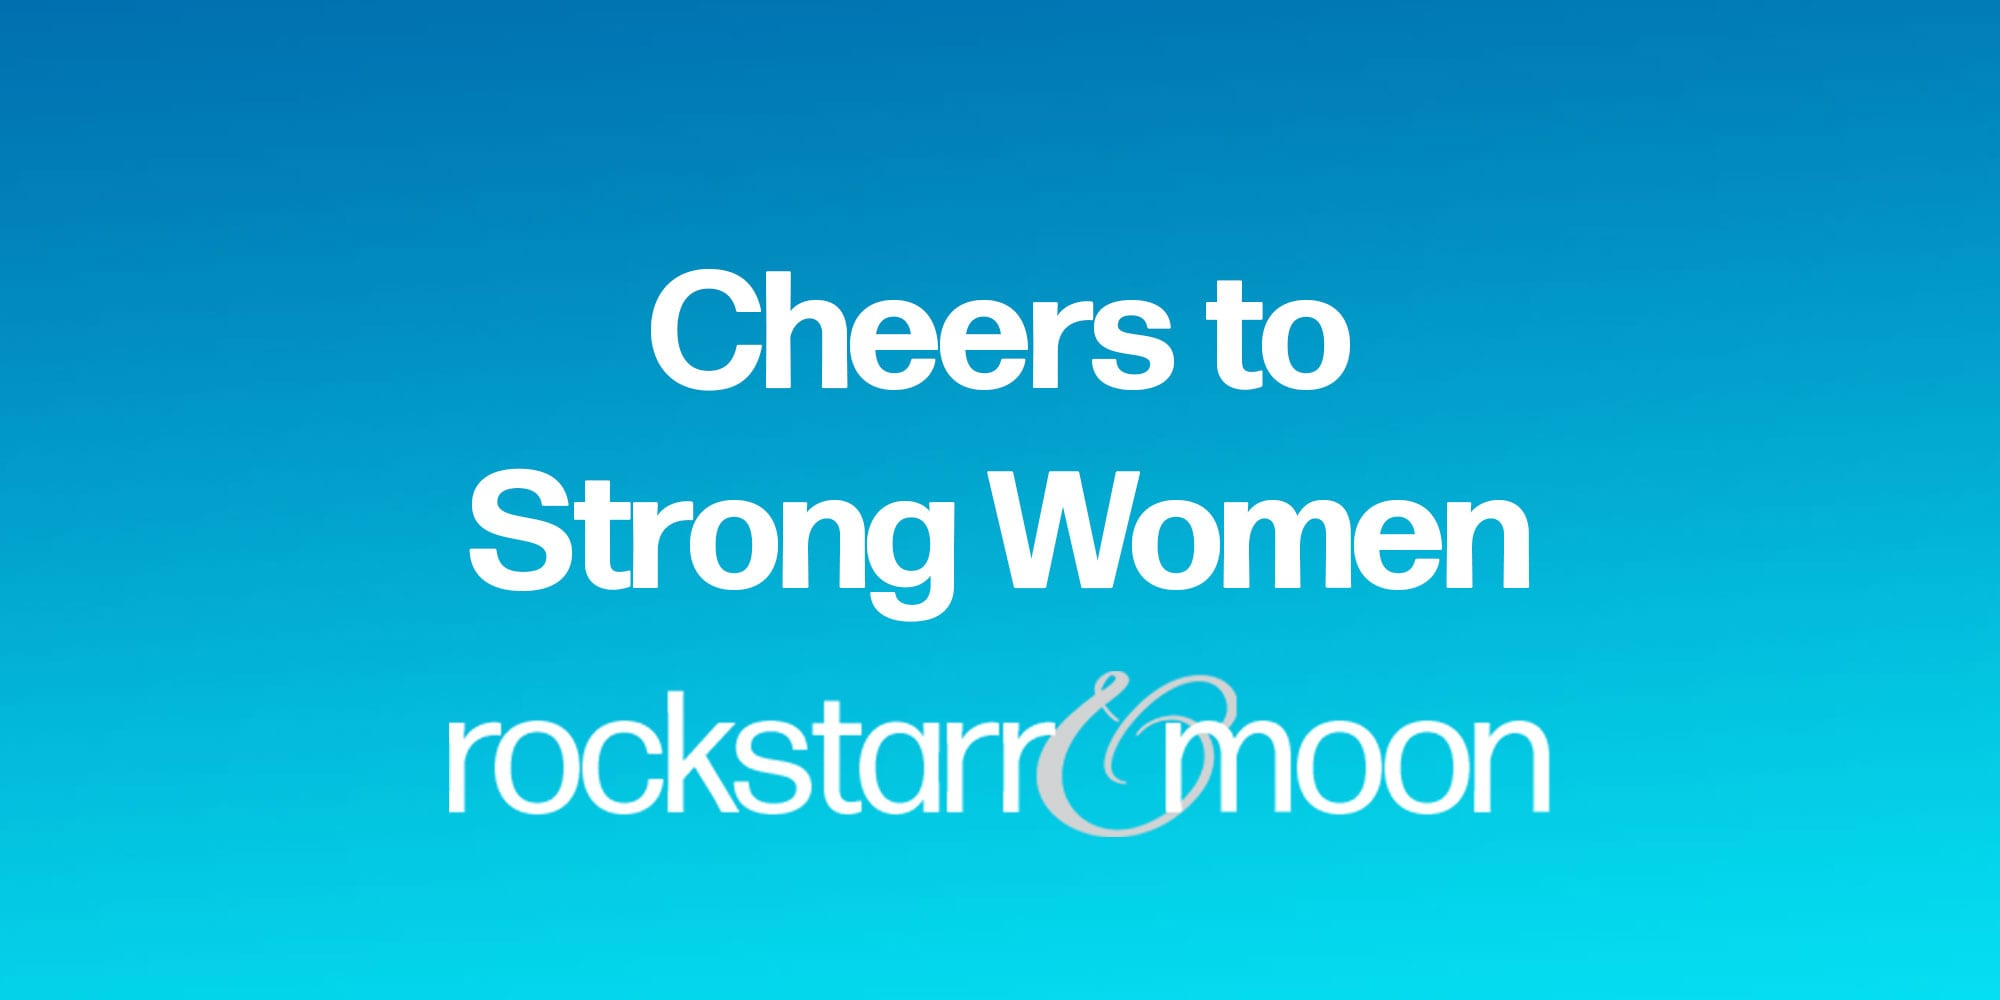 Cheers to Strong Women